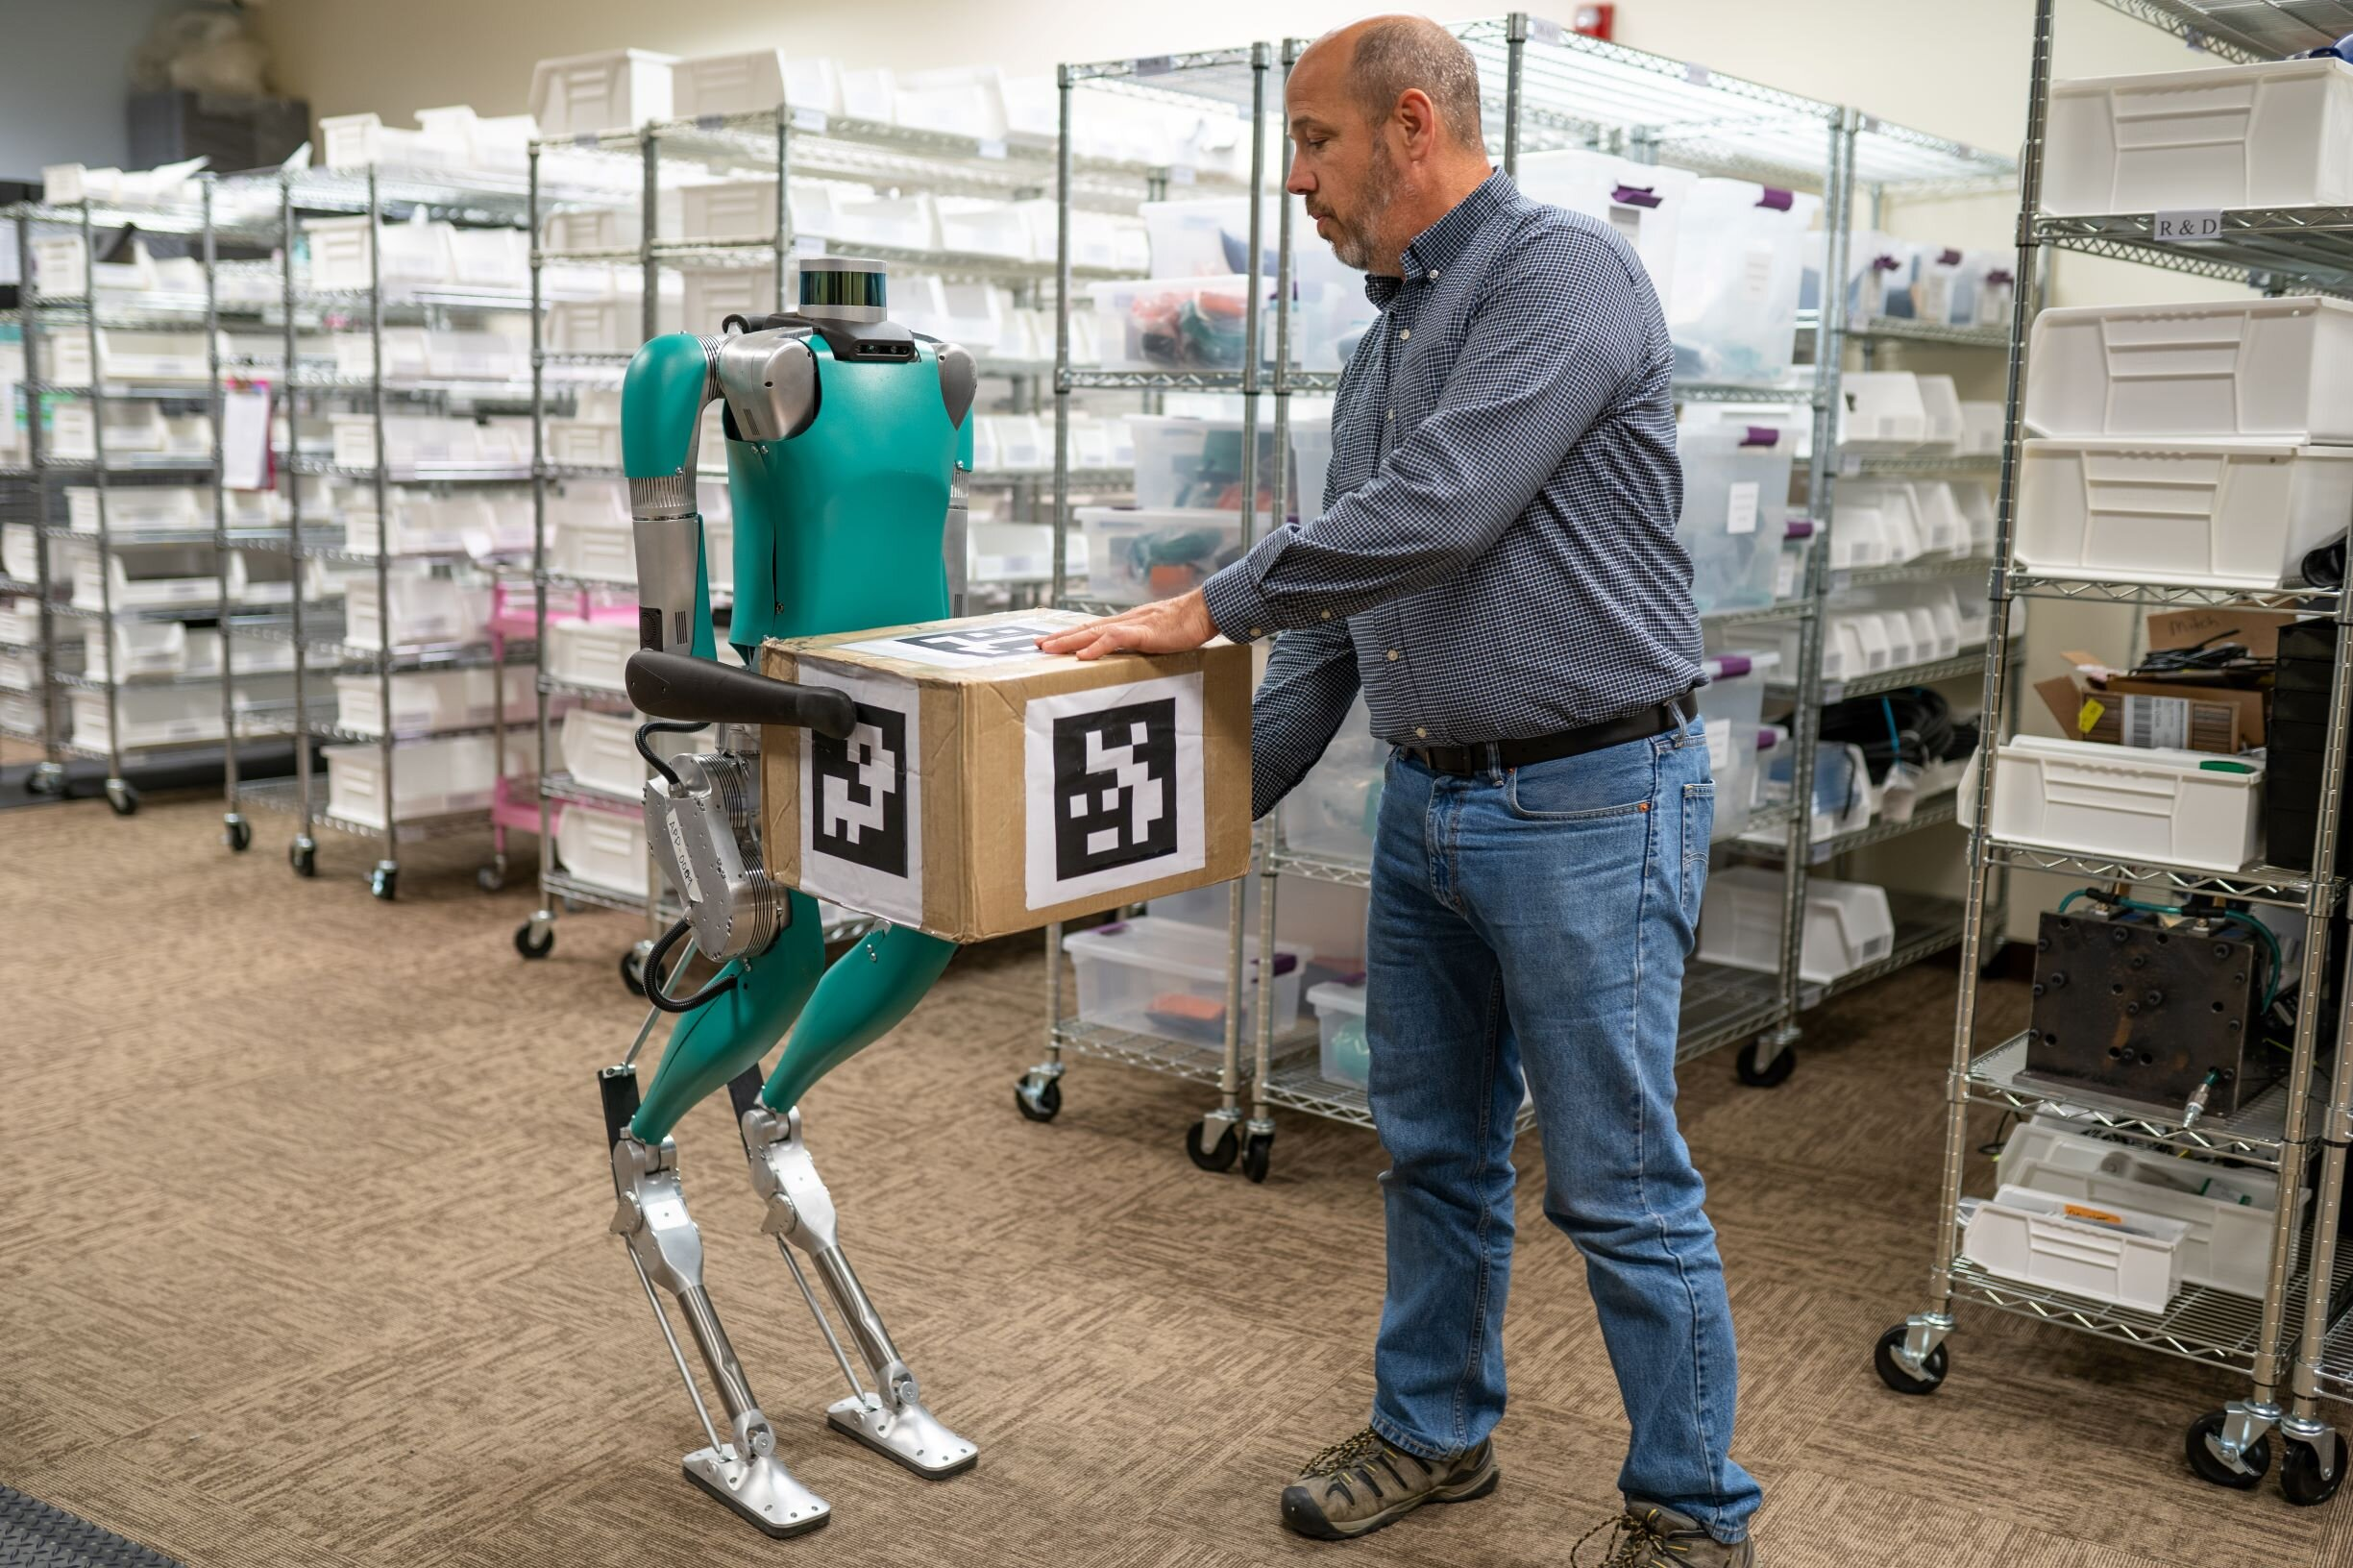 Support and storage operations that can already be robotized / automated